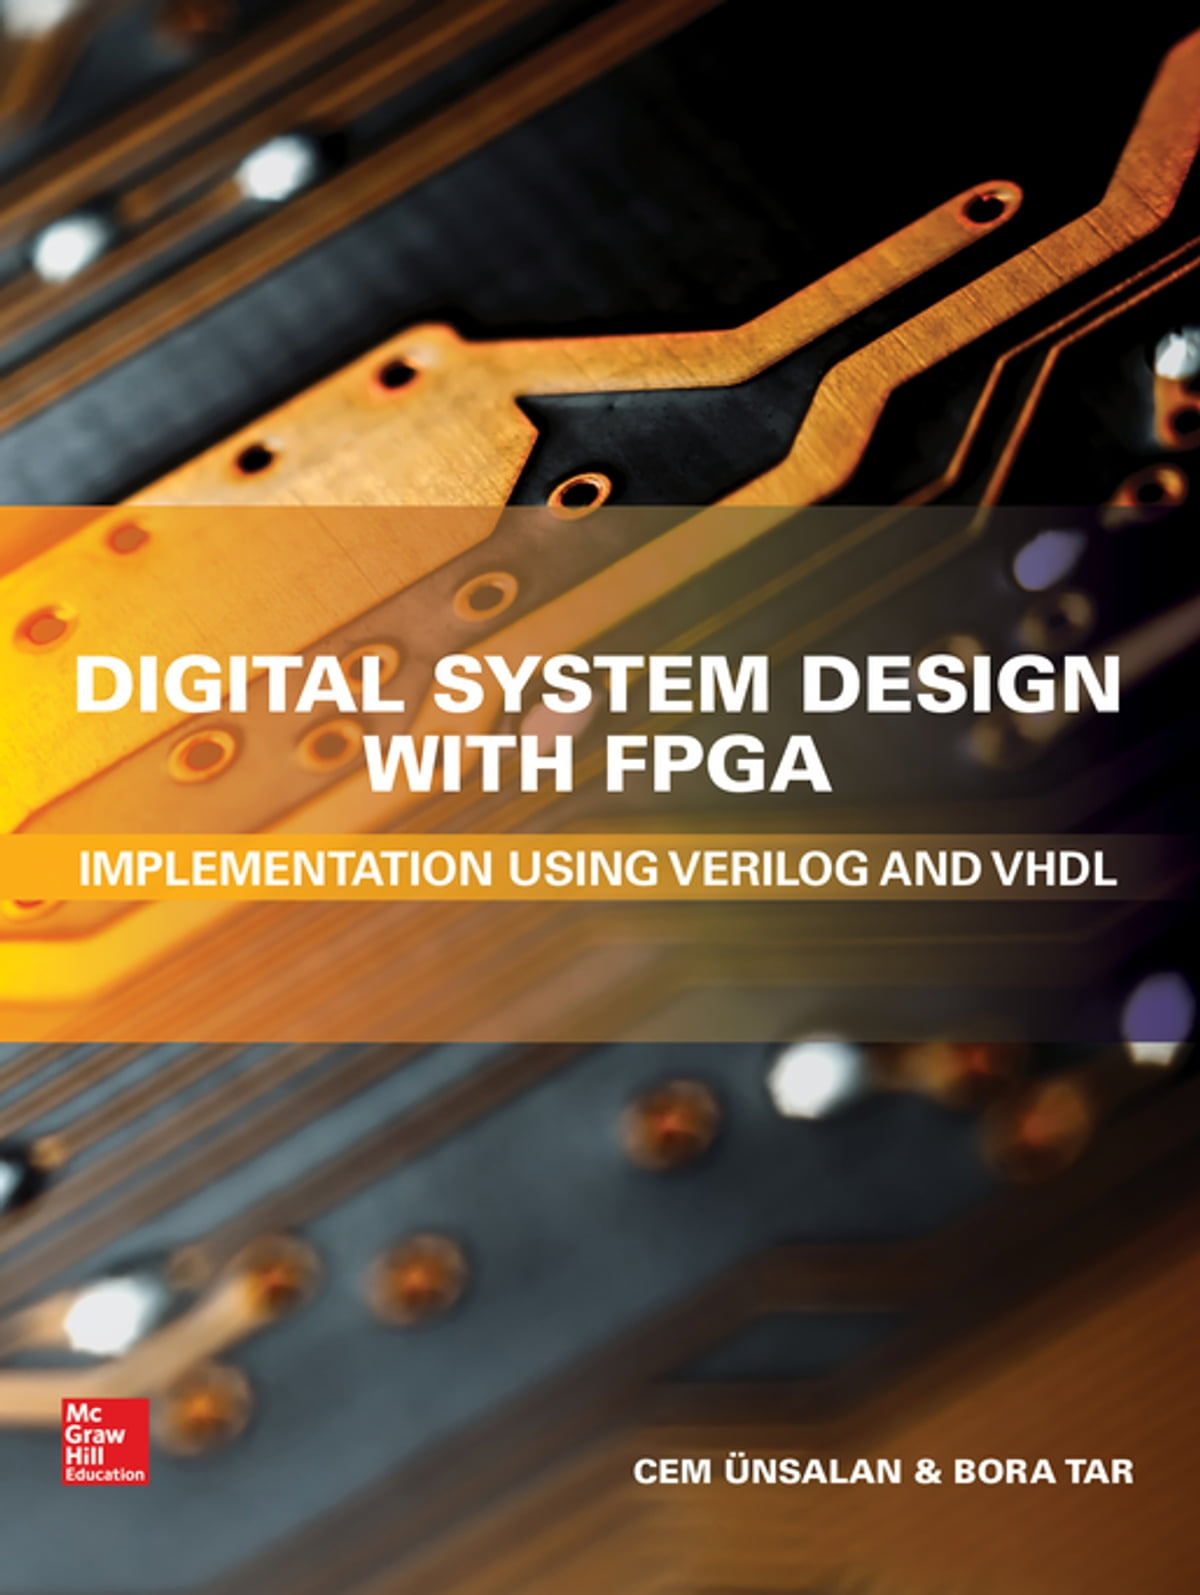 Digital System Design With Fpga Implementation Using Verilog And Vhdl Ebook By Cem Unsalan 9781259837913 Rakuten Kobo United States